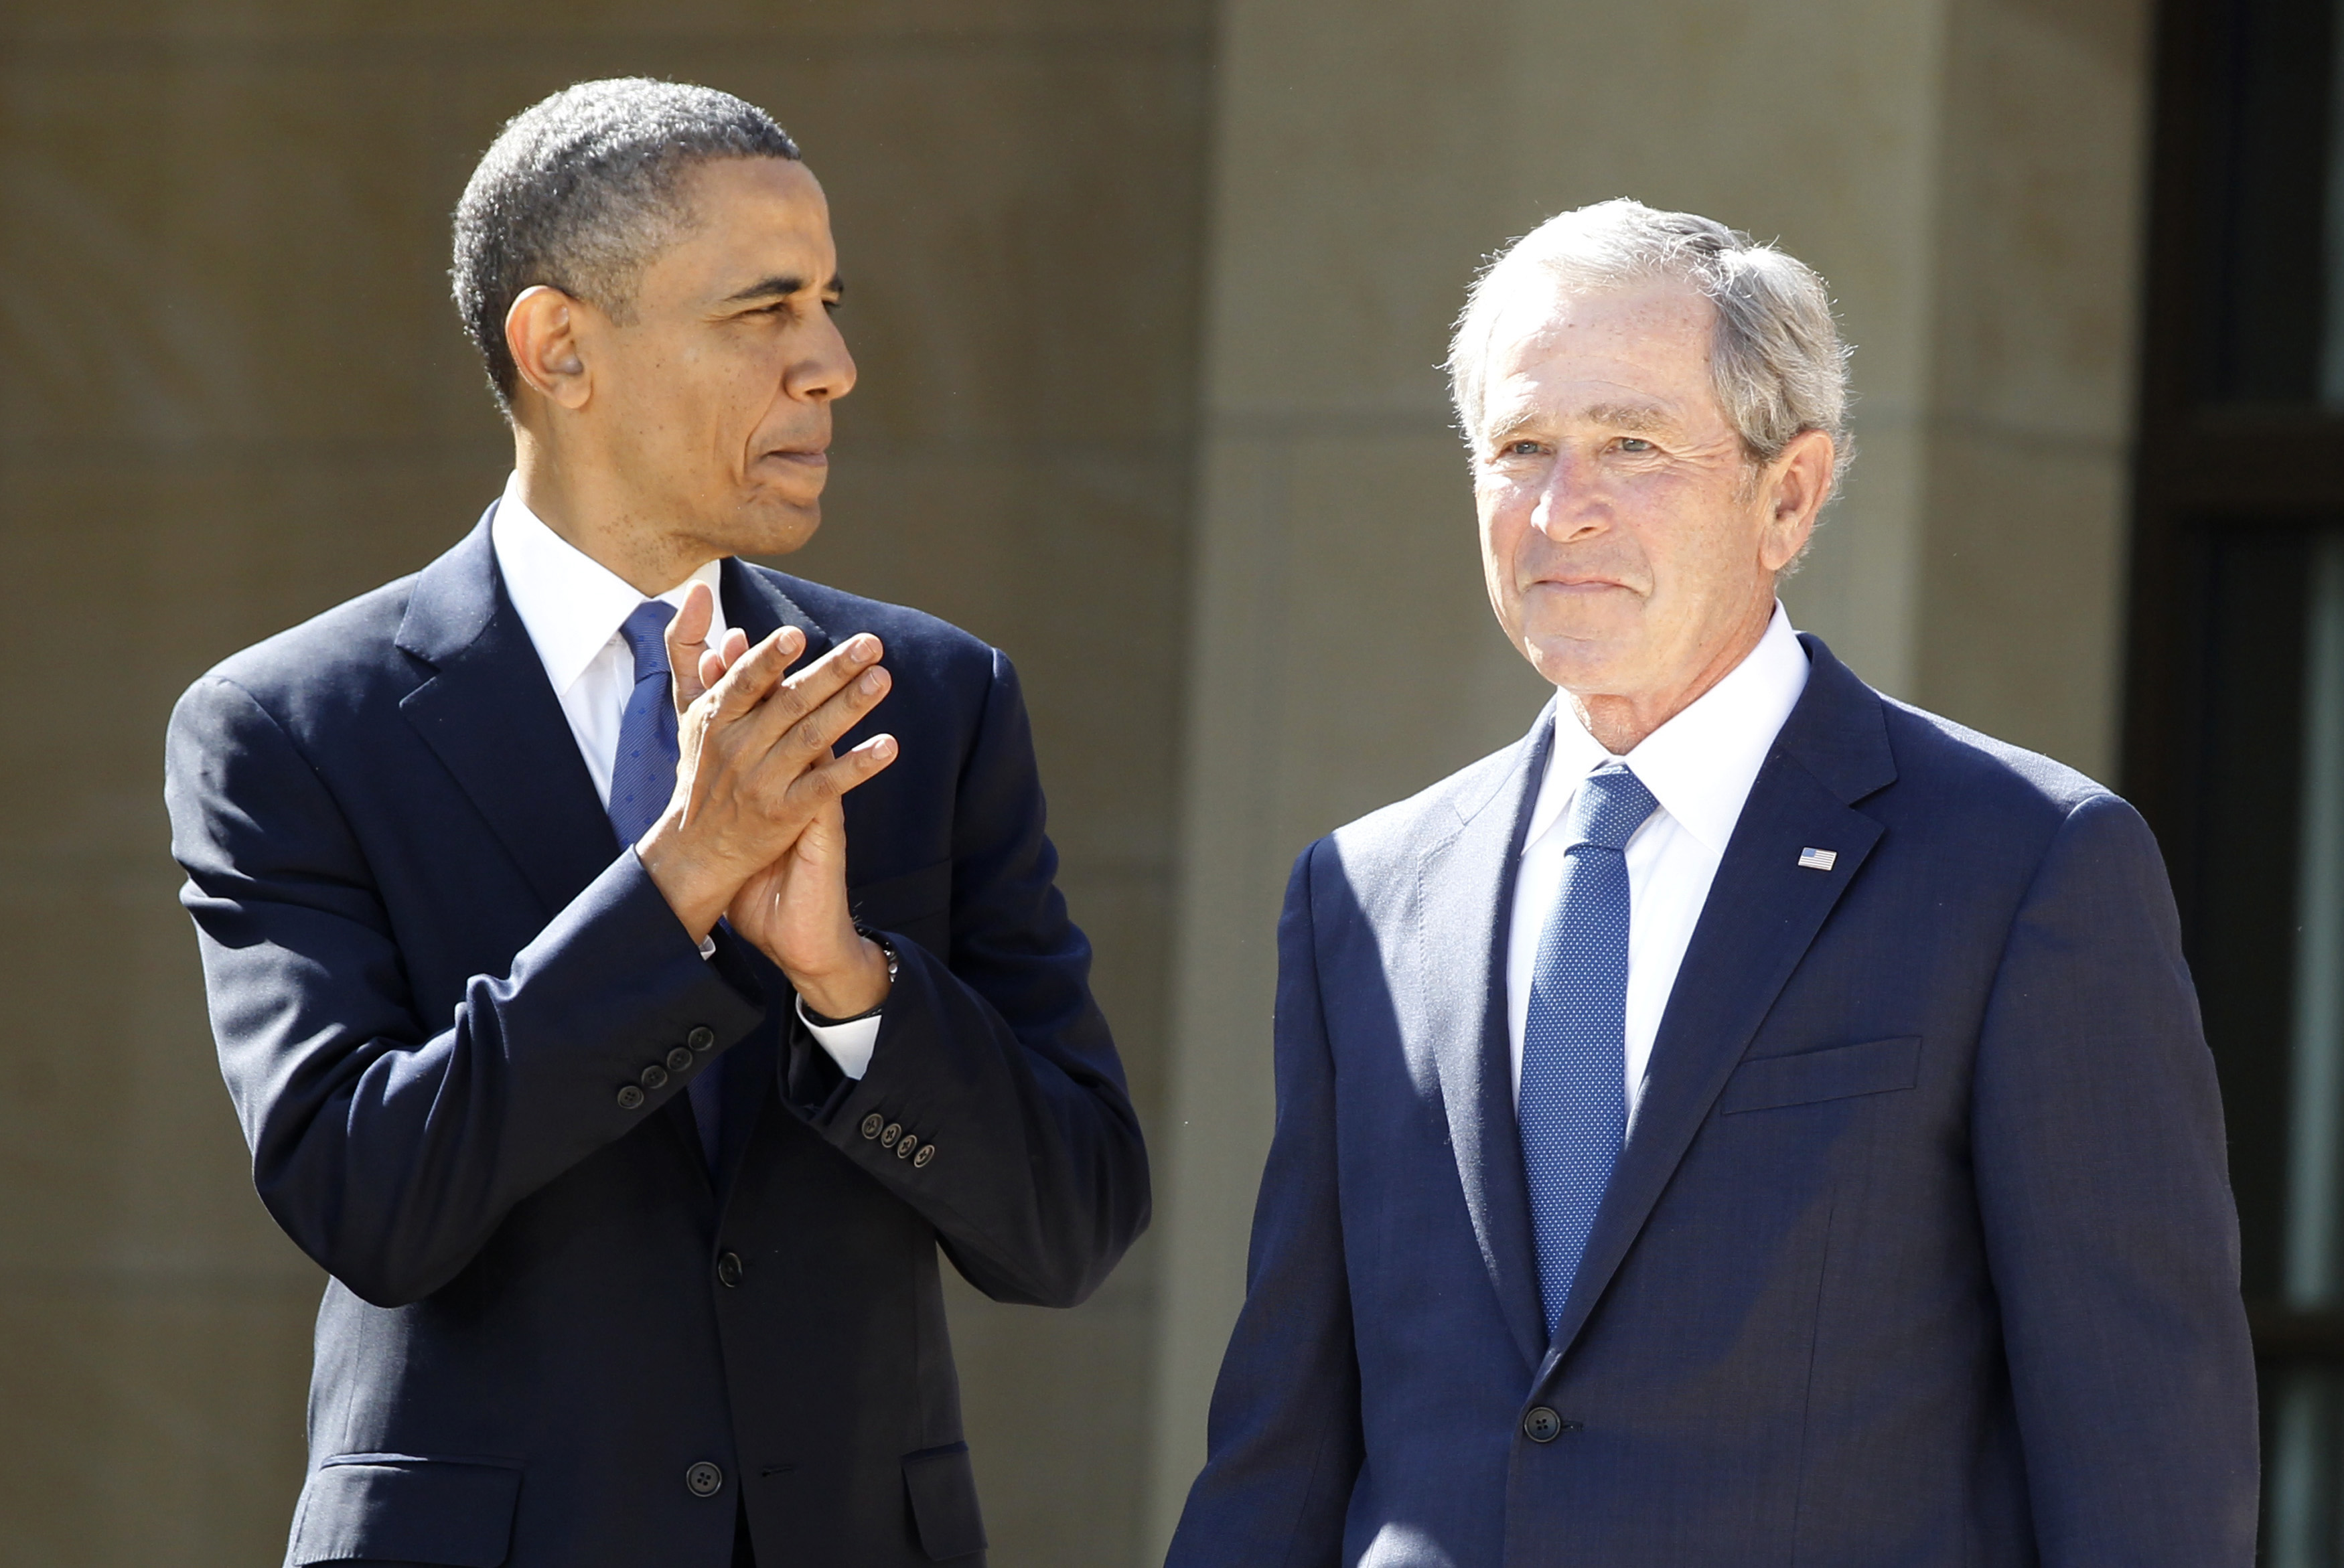 Bush, Obama Join Commission on Presidential Debates | Voice of America - English